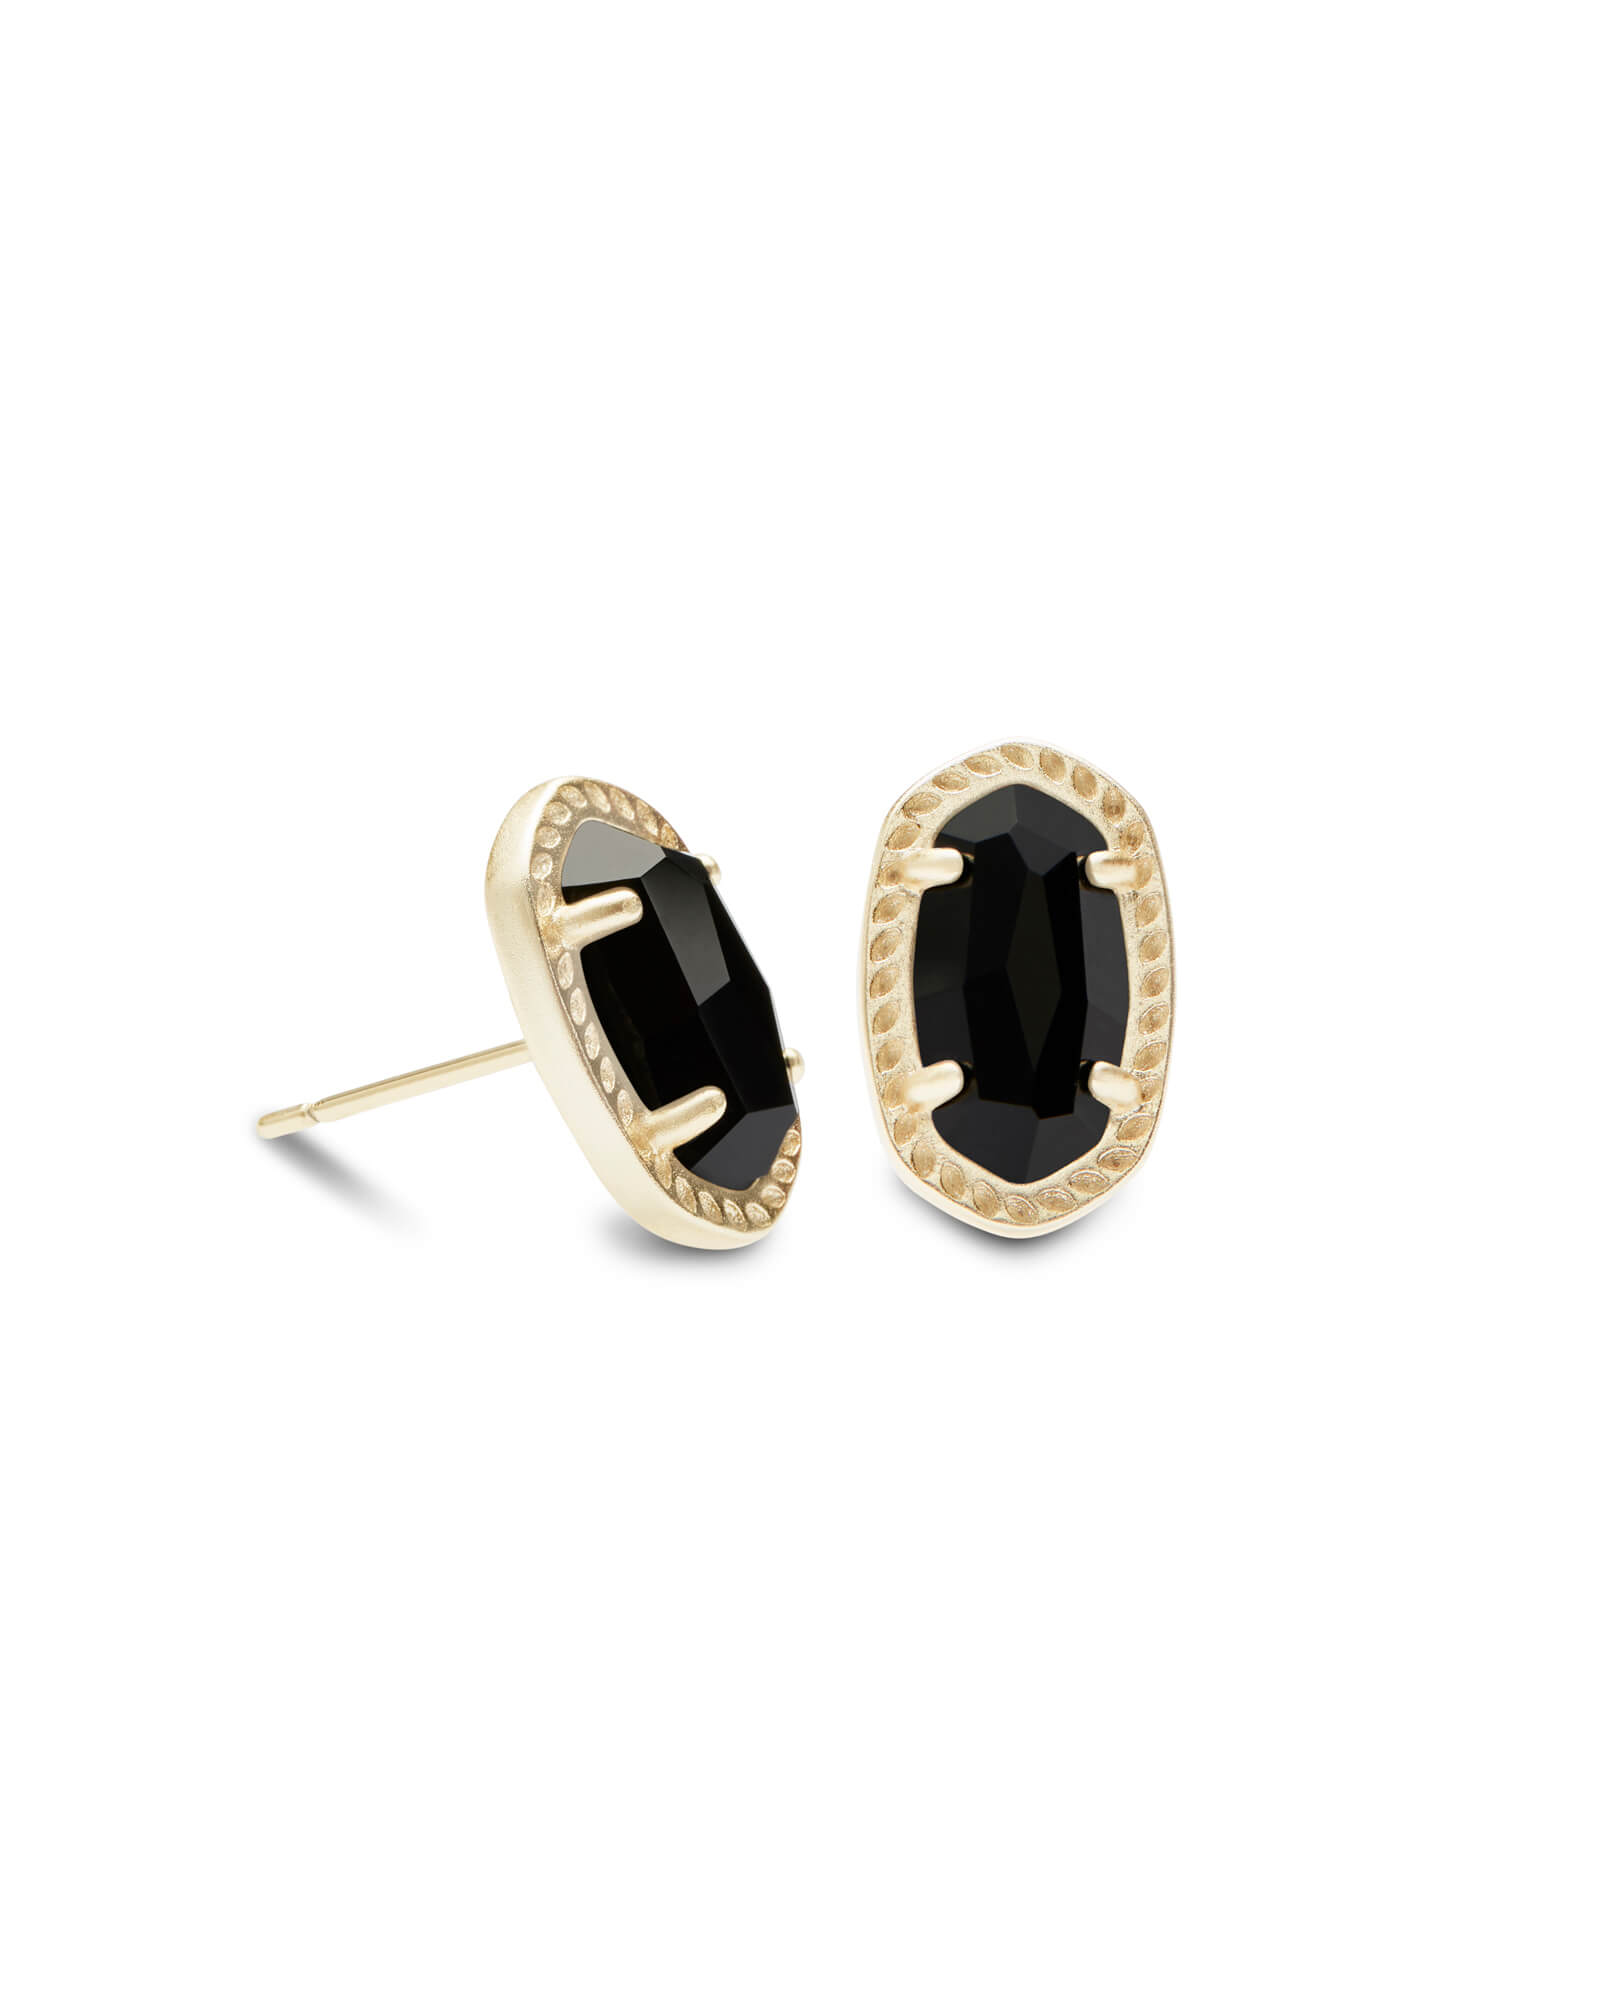 Emery Gold Stud Earrings in Black Opaque Glass